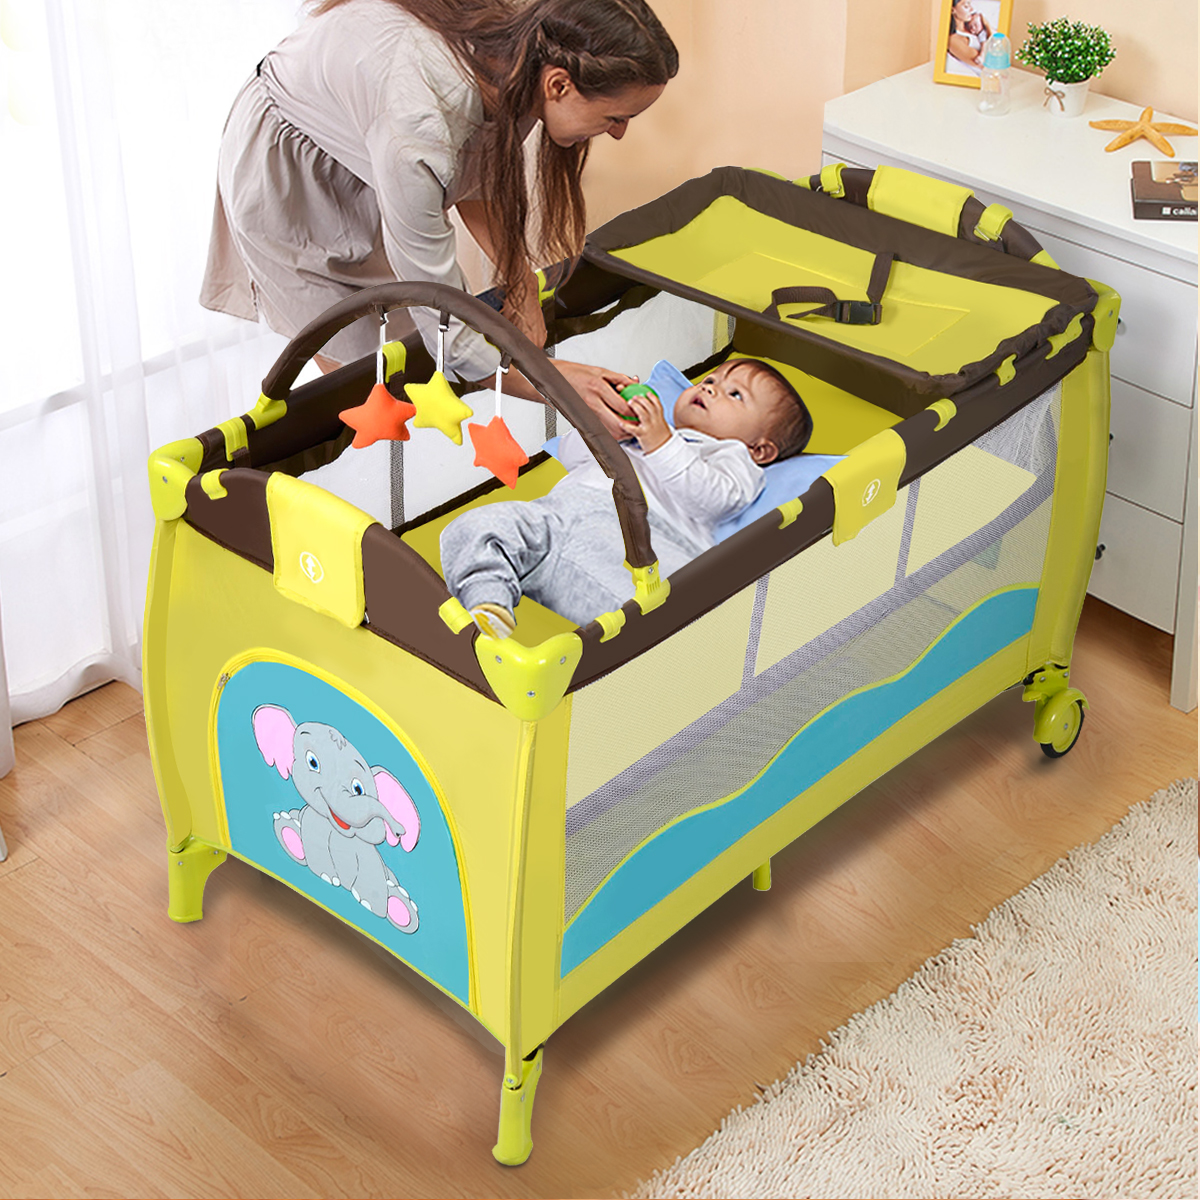 Baby Playpen How New Green Baby Crib Playpen Playard Pack Travel Infant